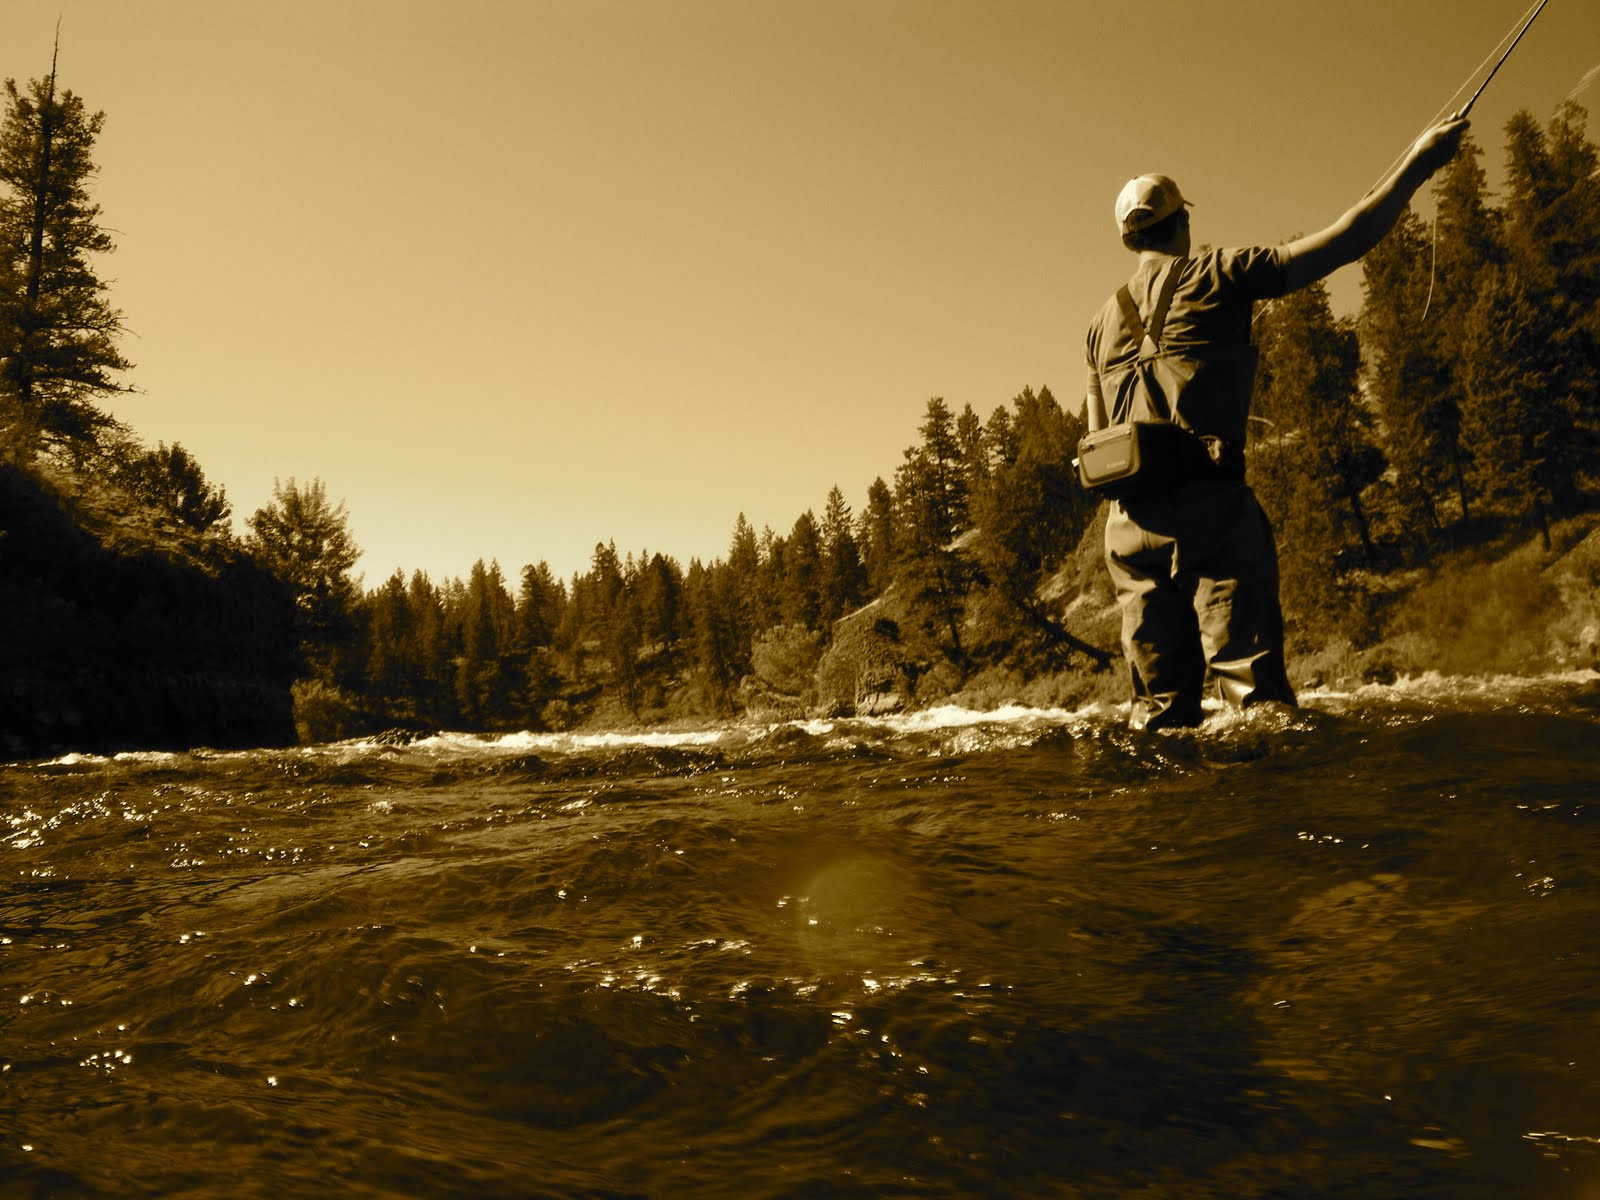 Chucking line and chasing tail things you hear while for Spokane river fishing